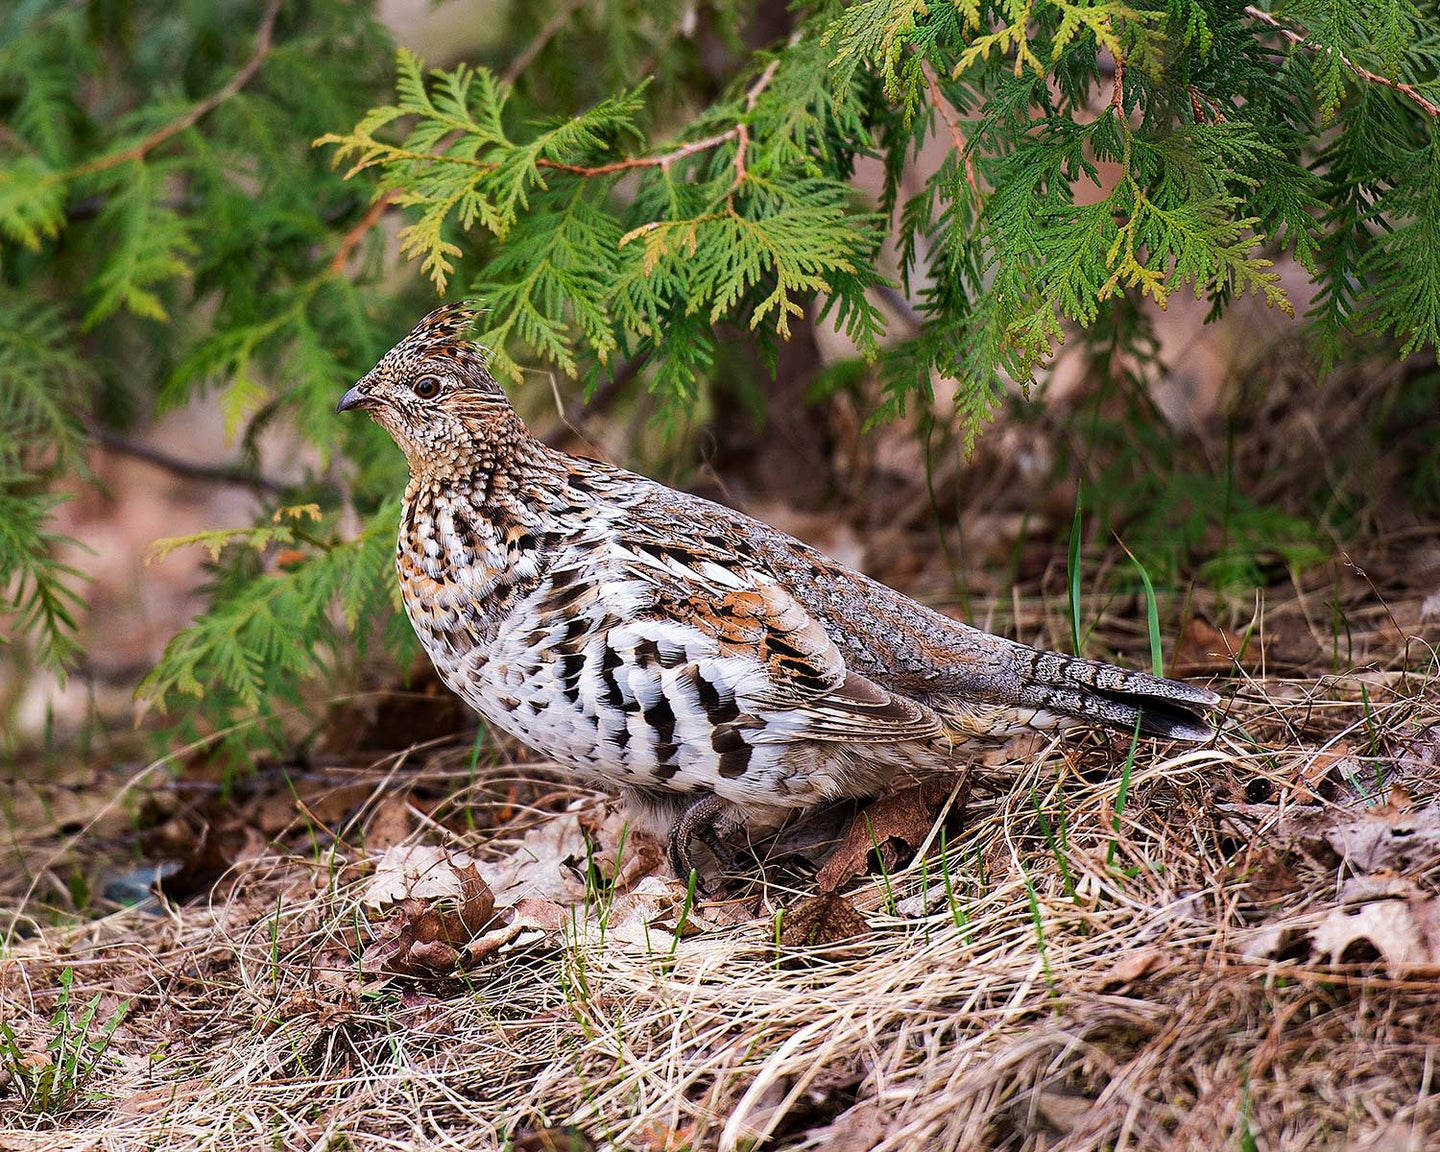 A ruffed grouse on the ground next to a bush.